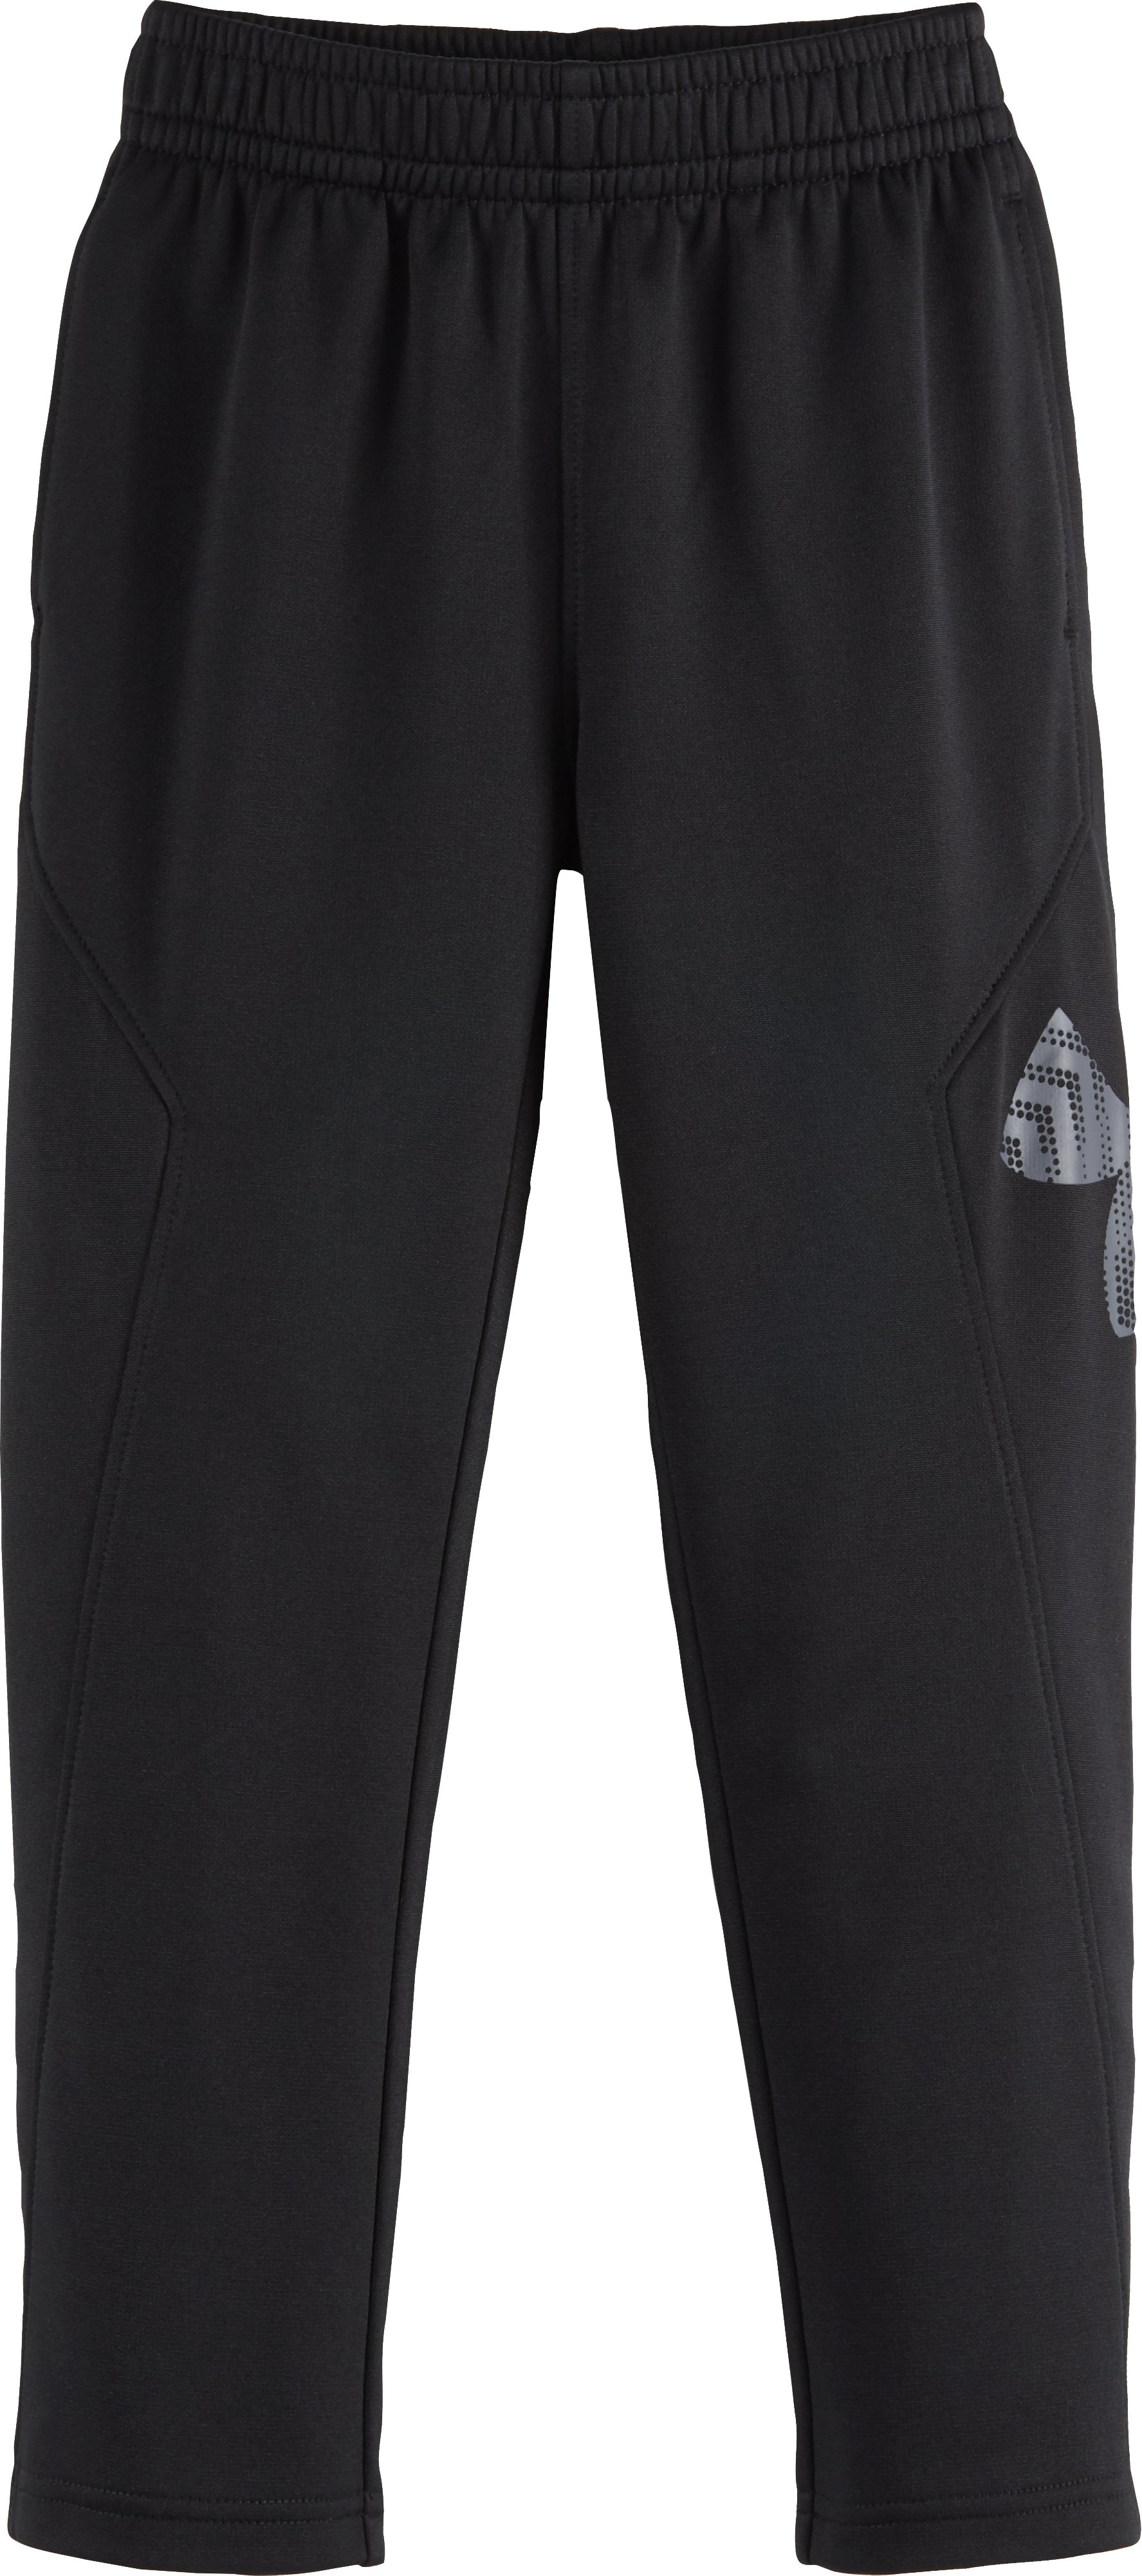 Boys' Pre-School UA Big Logo Pants, Black